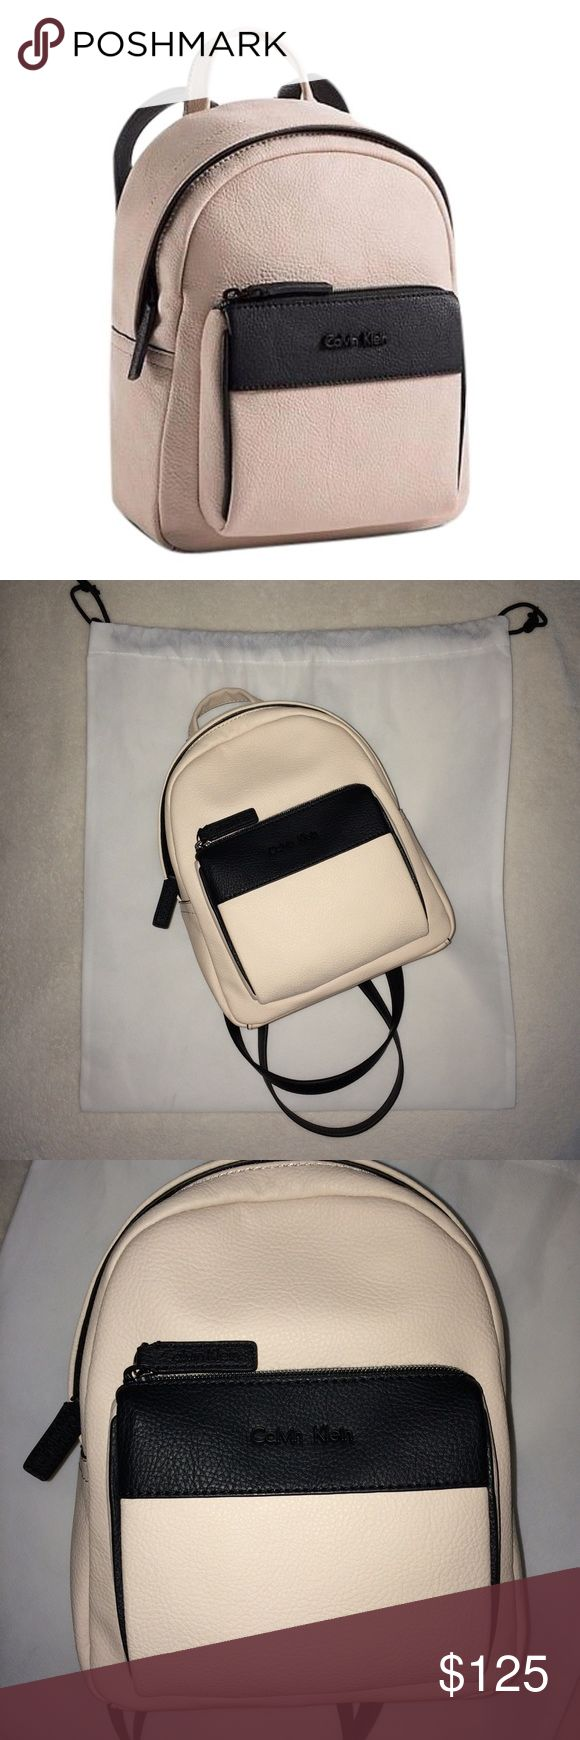 Calvin Klein Kira Backpack Brand new with tags attached, mini backpack but has many pockets inside and slots to hold everything you need. It's kind of a mix between a creamy tan, but also looks like a very pale pink but only very slightly  still beautiful nonetheless and matches pretty much anything! Comes with big CK drawstring bag :) 100% authenticity guaranteed NO TRADES Calvin Klein Bags Backpacks